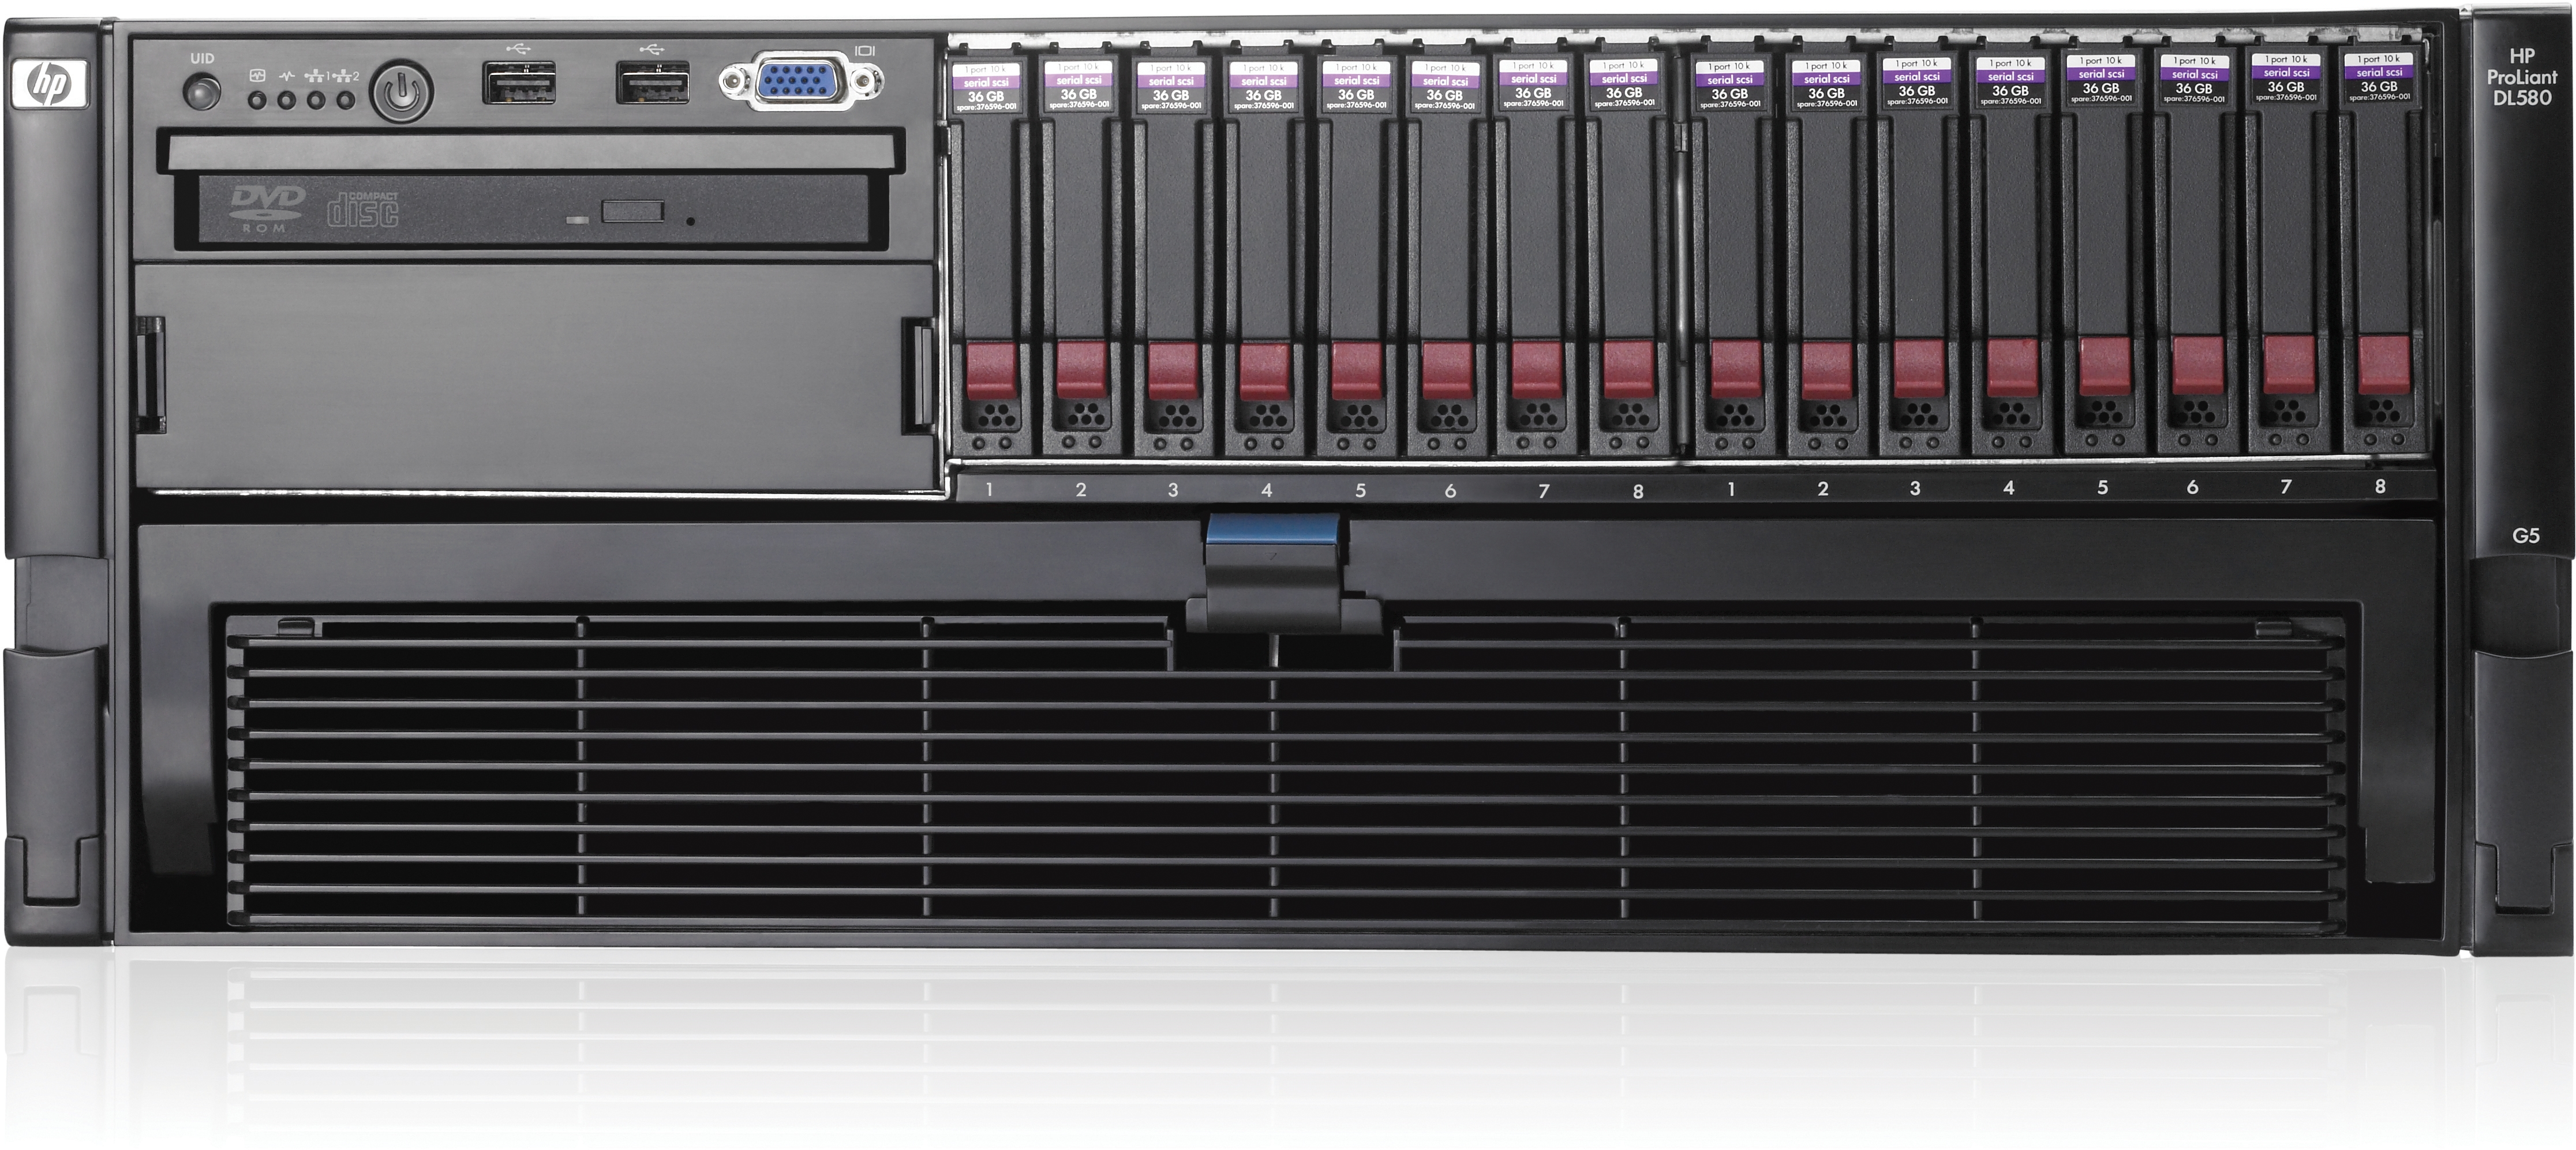 hp proliant ml350 g5 server drivers download